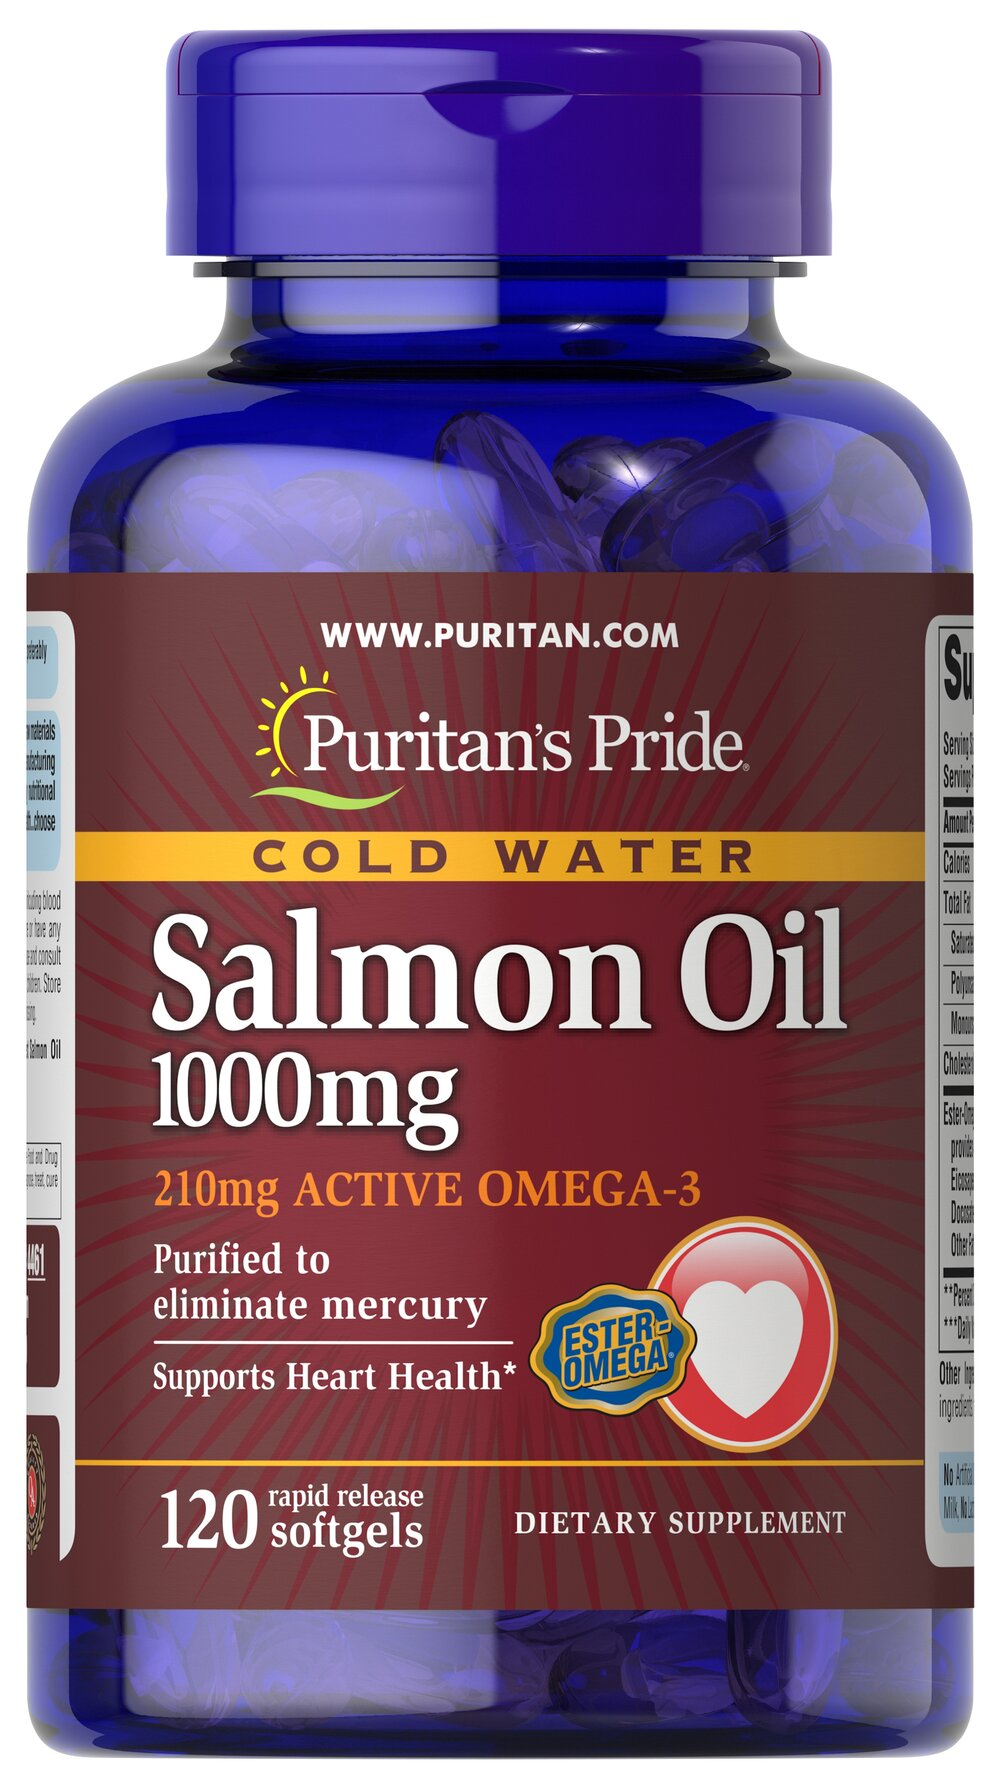 Omega-3 Salmon Oil 1000 mg (210 mg Active Omega-3)  120 Softgels 1000 mg $23.99